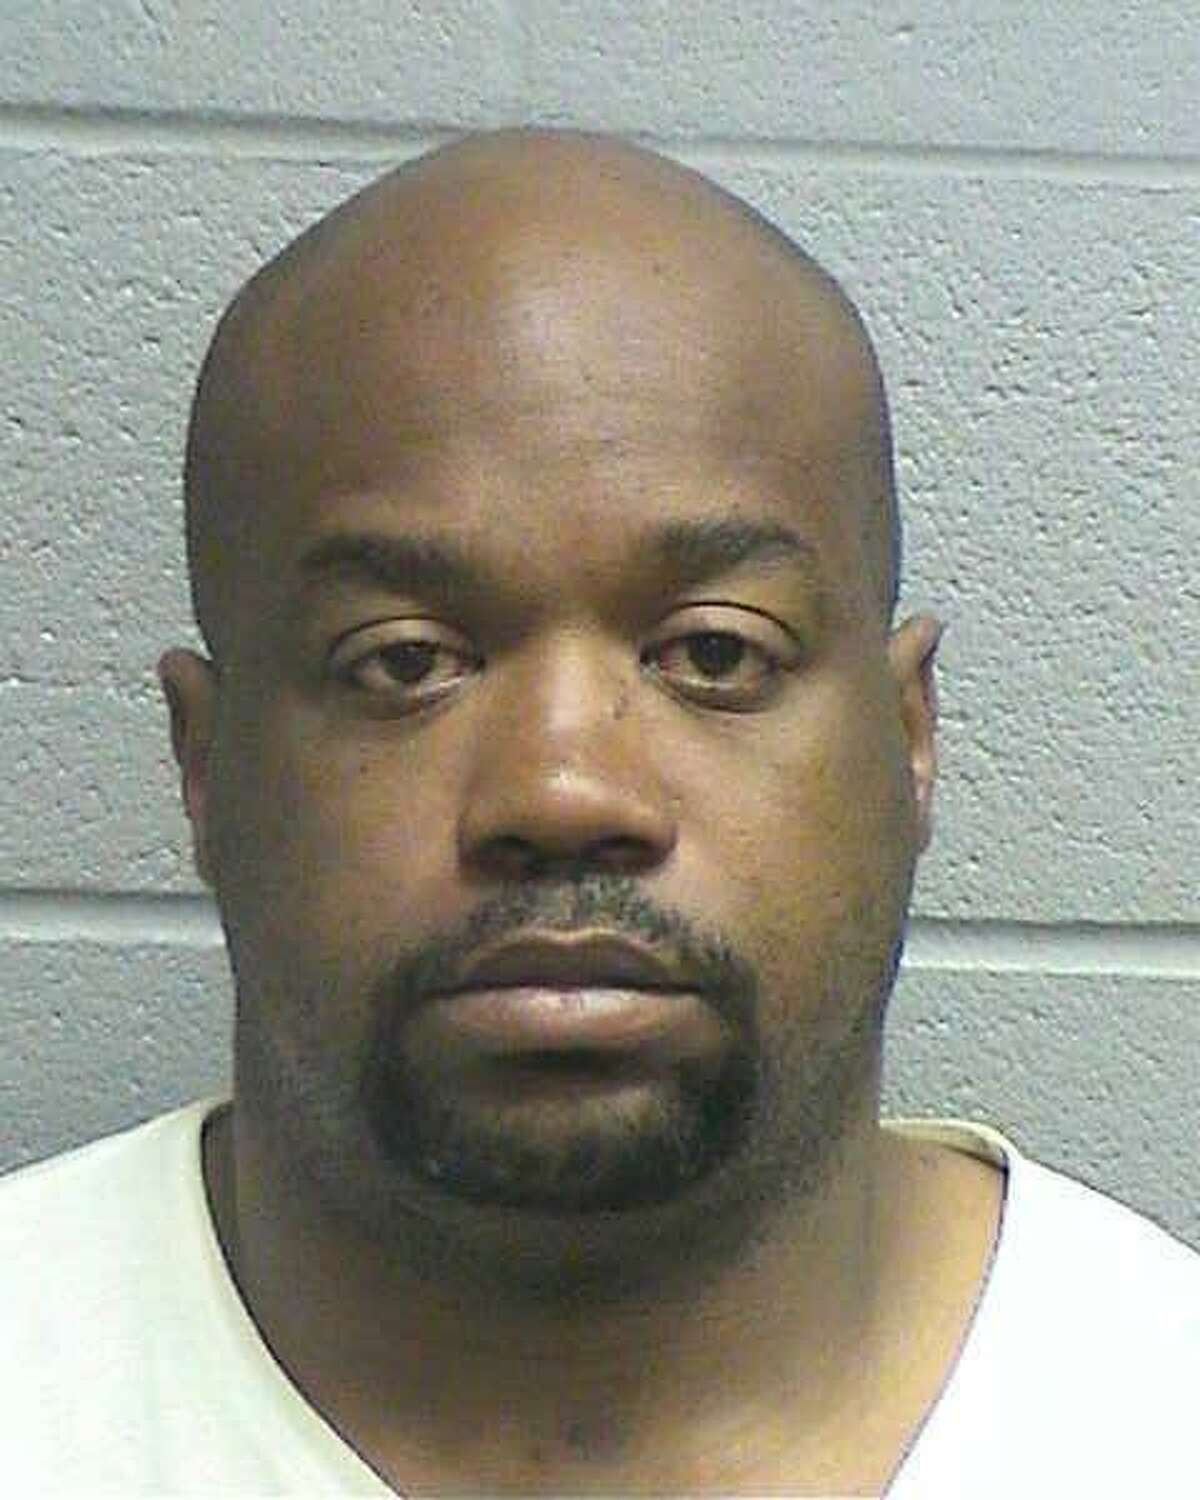 Robert Charles Royals III, 37, of Midland, was arrested May 6 on a second-degree felony charge of possession of a controlled substance between 4 and 200 grams, a third-degree felony charge of possession of a prohibited substance in a corrections facility, a class B misdemeanor charge of possession of marijuana less than 2 ounces and a class C misdemeanor charge of public intoxication.After being arrested for public intoxicated, Royals was found in possession of marijuana in his sock and cocaine in his rectum.If convicted, Royals faces up to 20 years in prison for the second-degree felony and up to 10 years for the third-degree felony.